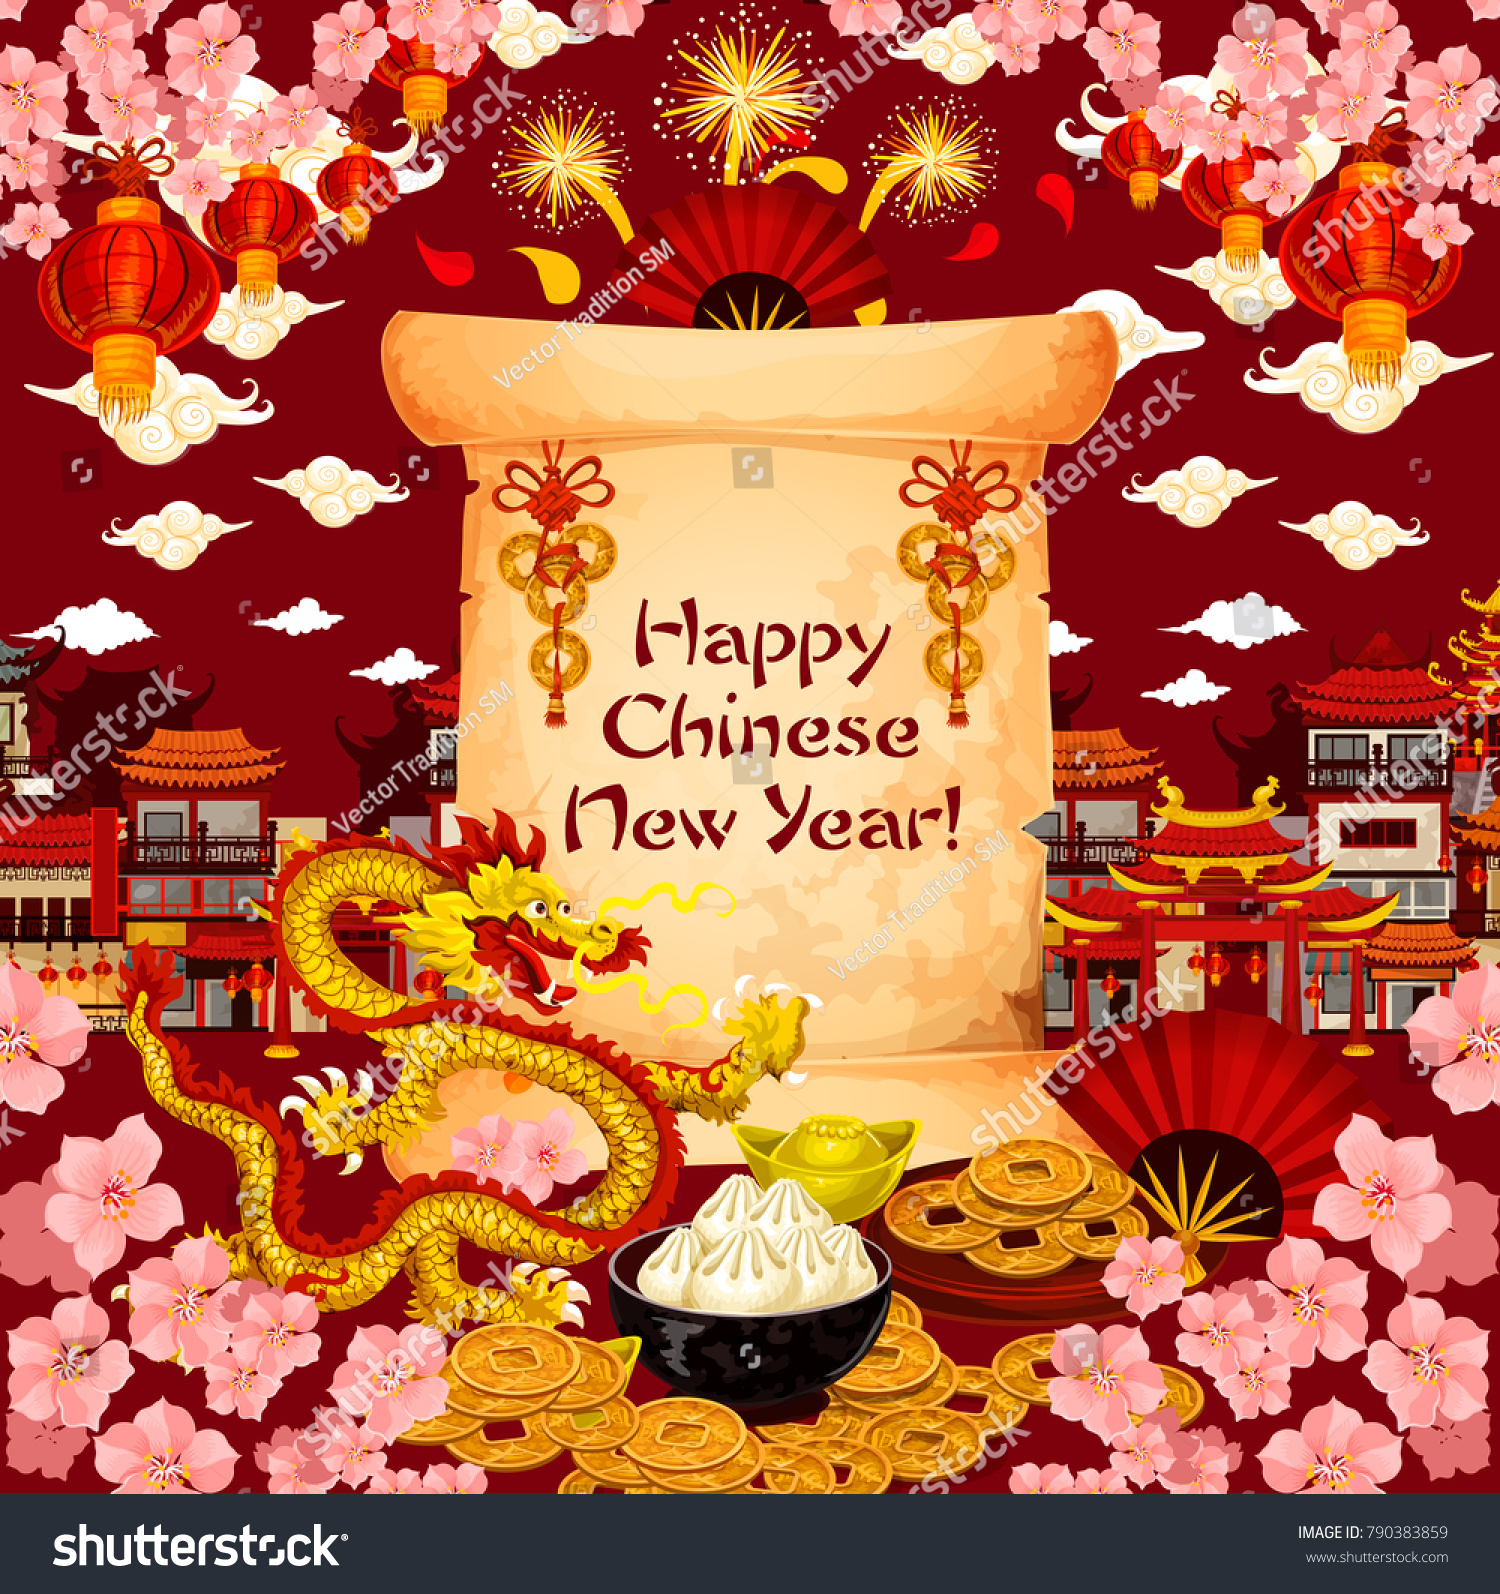 Chinese New Year Wish Text On Stock Vector (Royalty Free) 790383859 ...